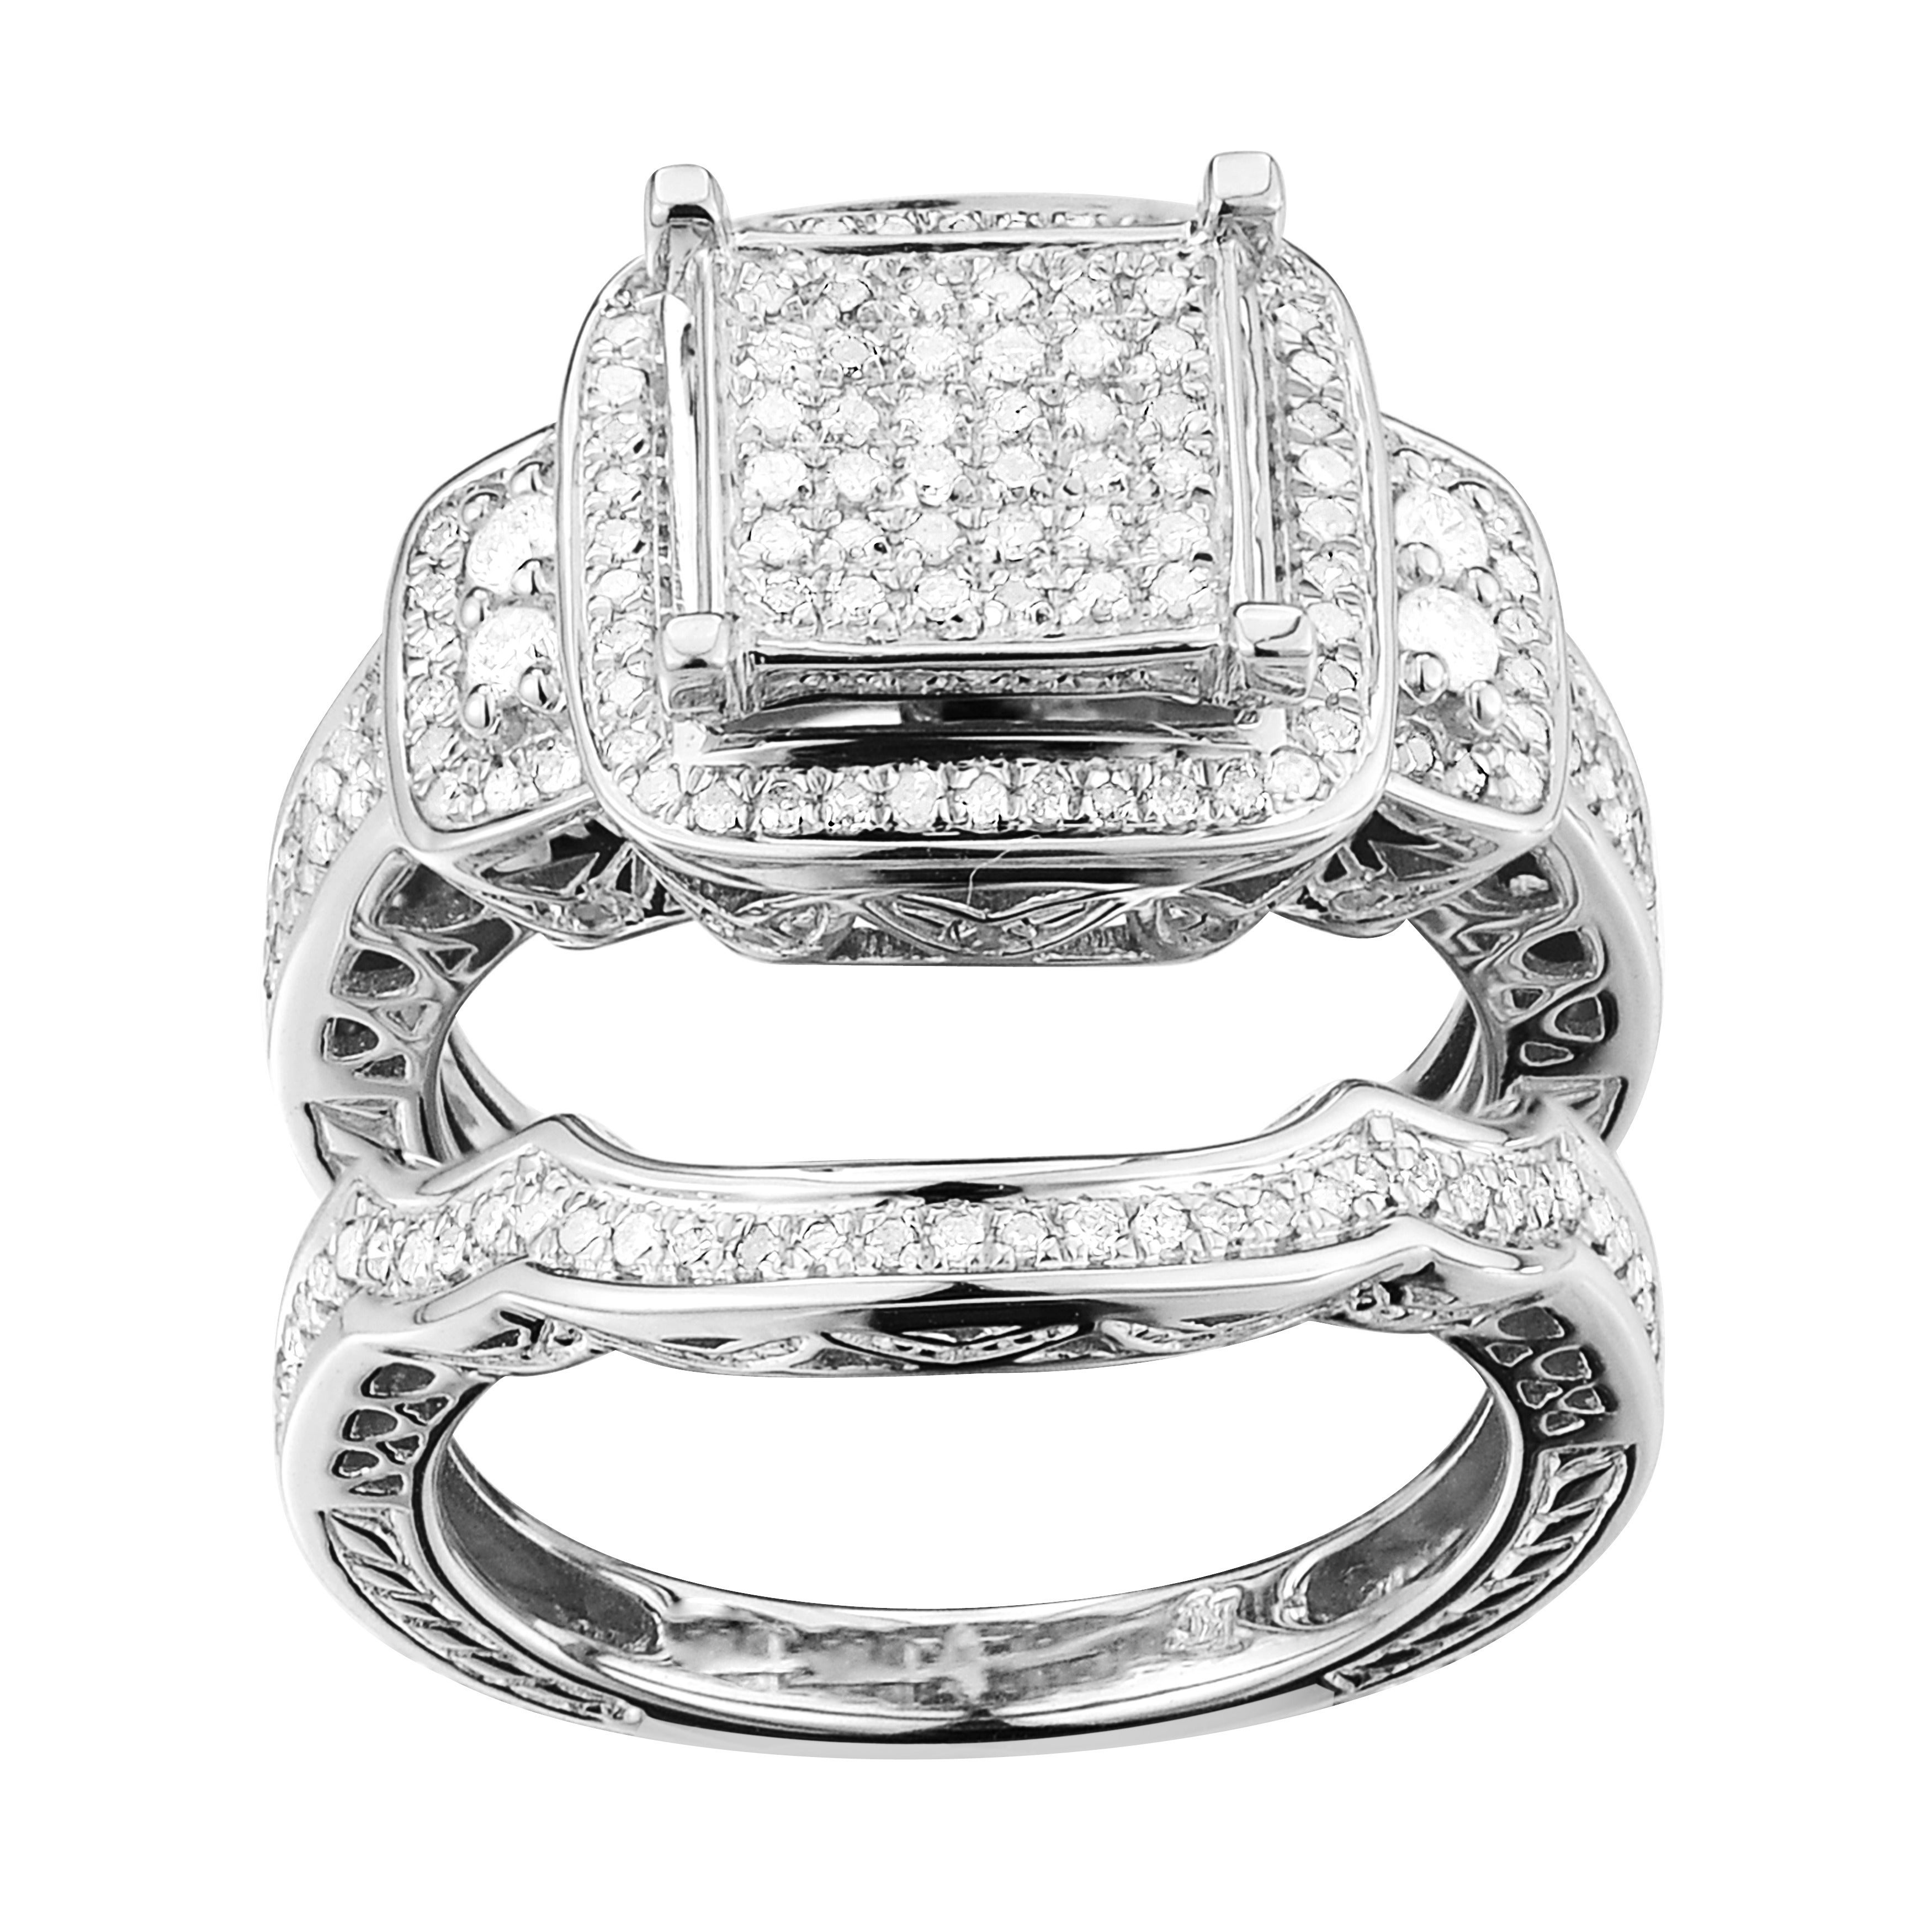 Diamond Wedding Band in Sterling Silver Size-3.25 G-H,I2-I3 1//6 cttw,